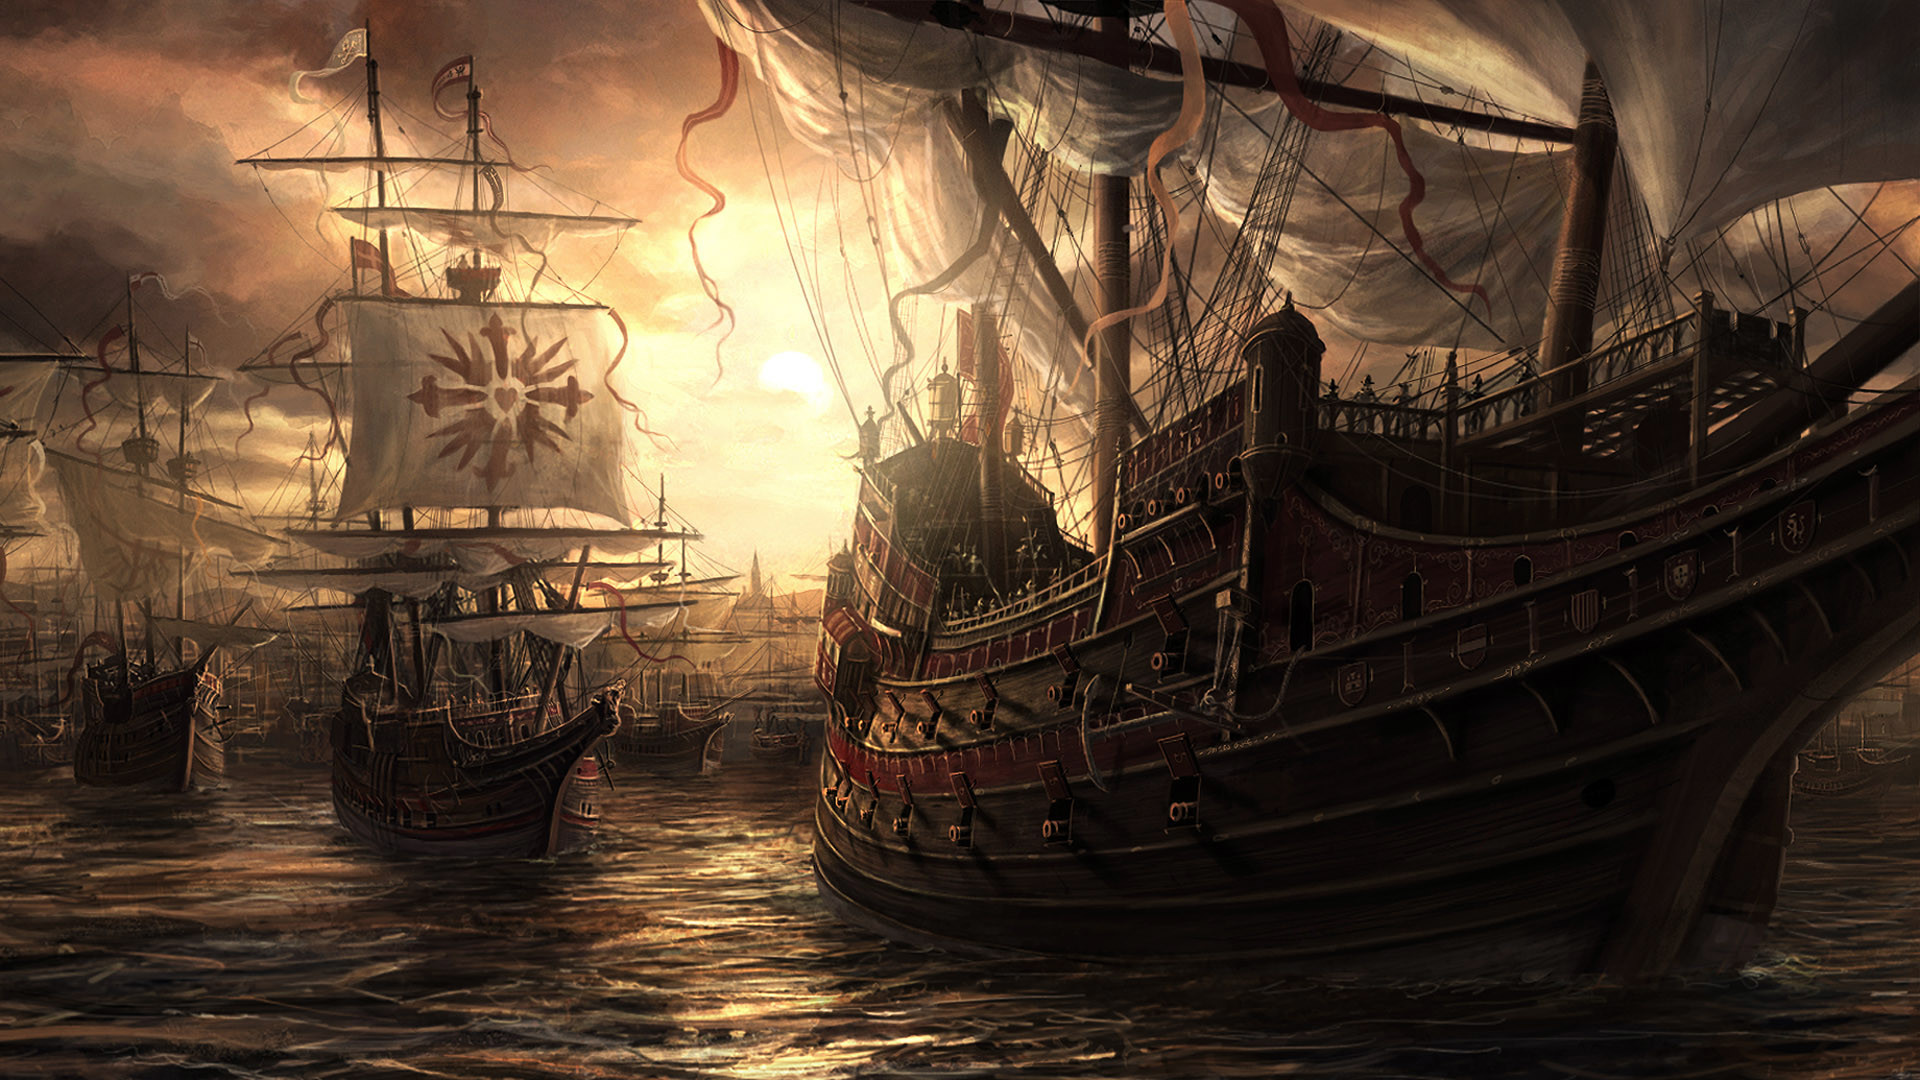 Old Ship Wallpaper 56 images 1920x1080